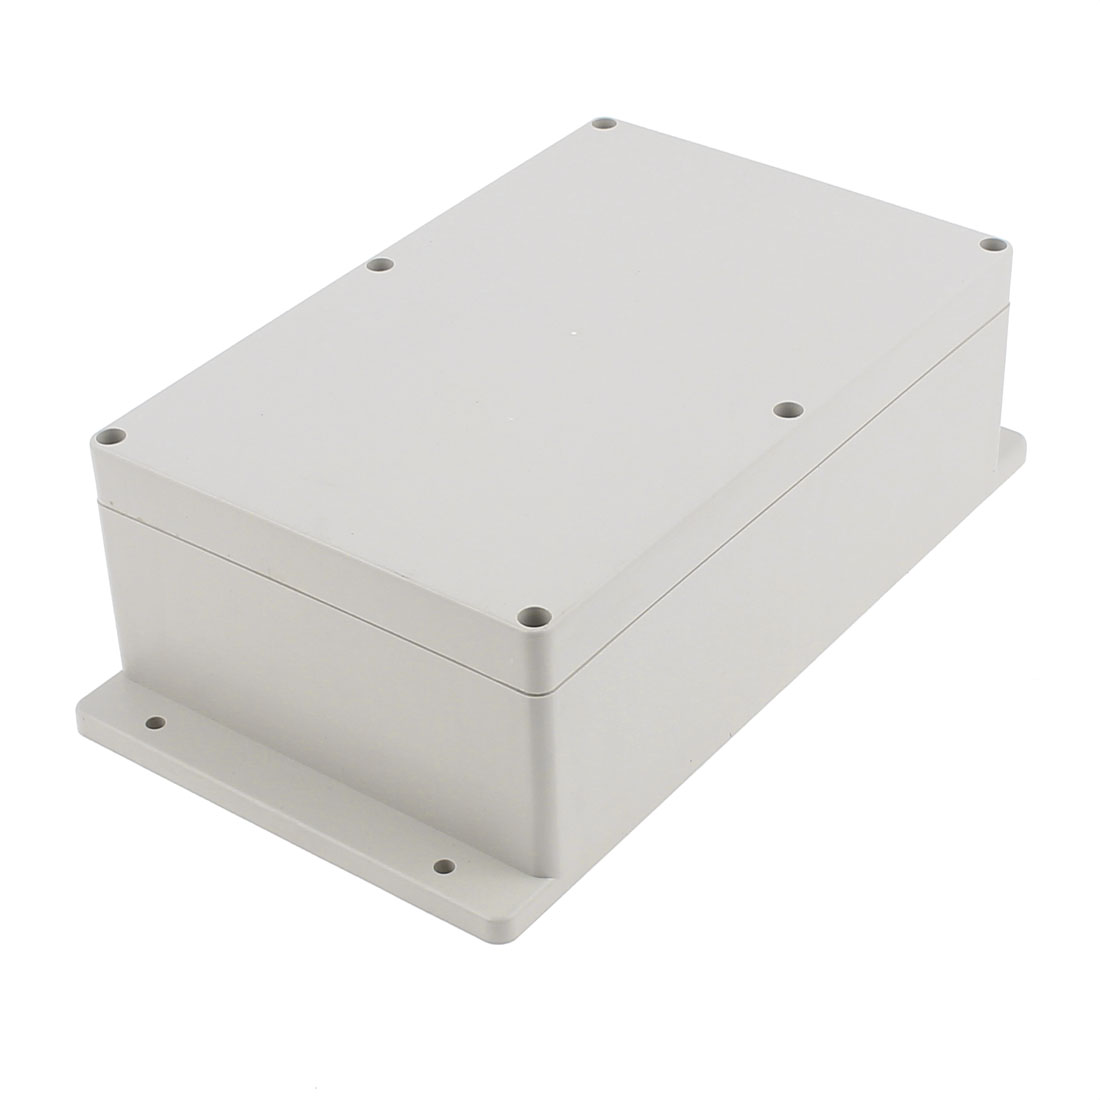 230 x 150 x 85mm Dustproof IP65 Junction Box DIY Terminal Connecting Enclosure